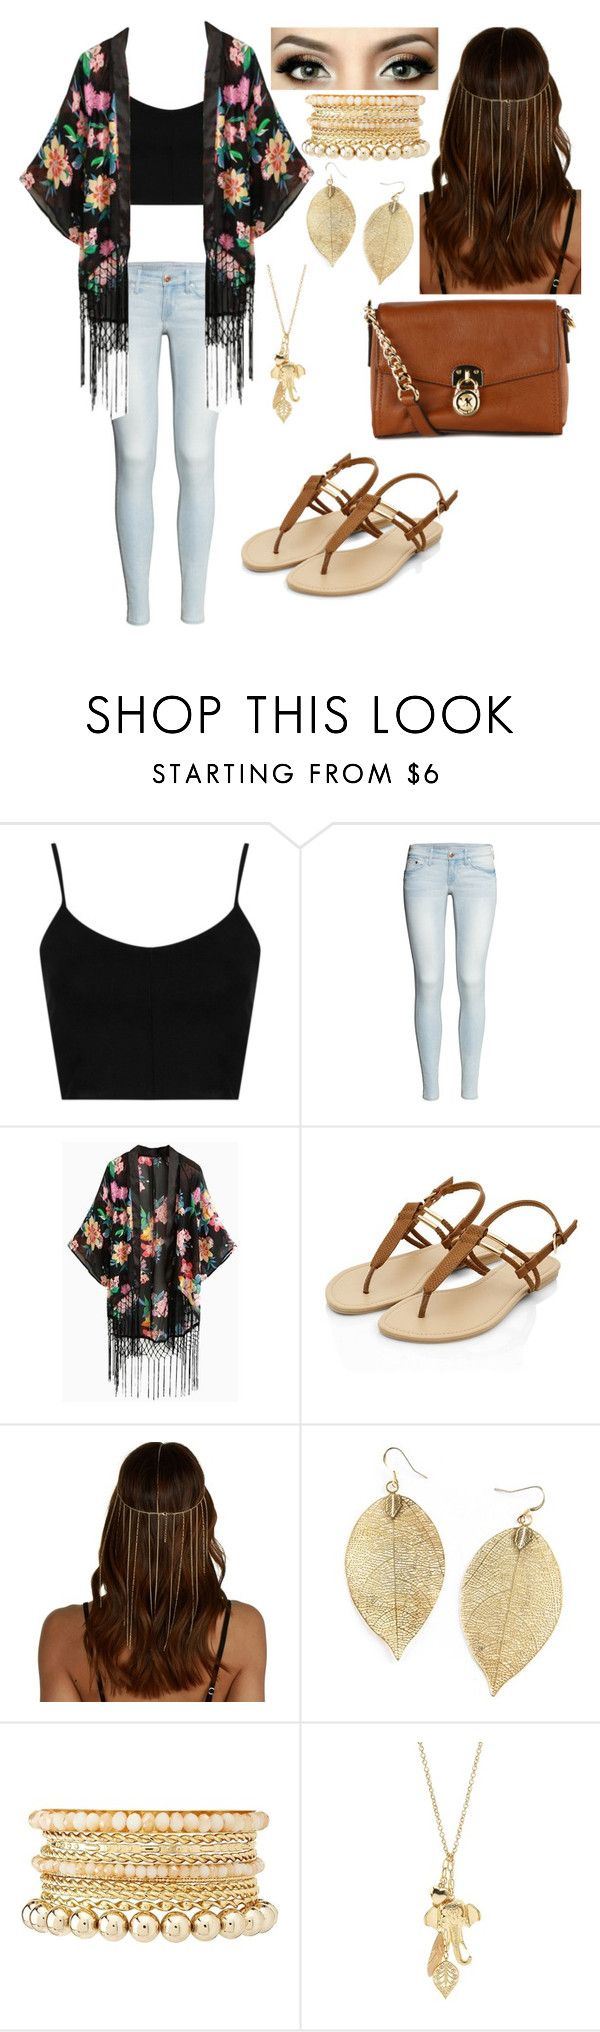 Beach Boardwalk Outfit by kimberlyorantes on Polyvore featuring Topshop, H&M, MICHAEL Michael Kors and Charlotte Russe